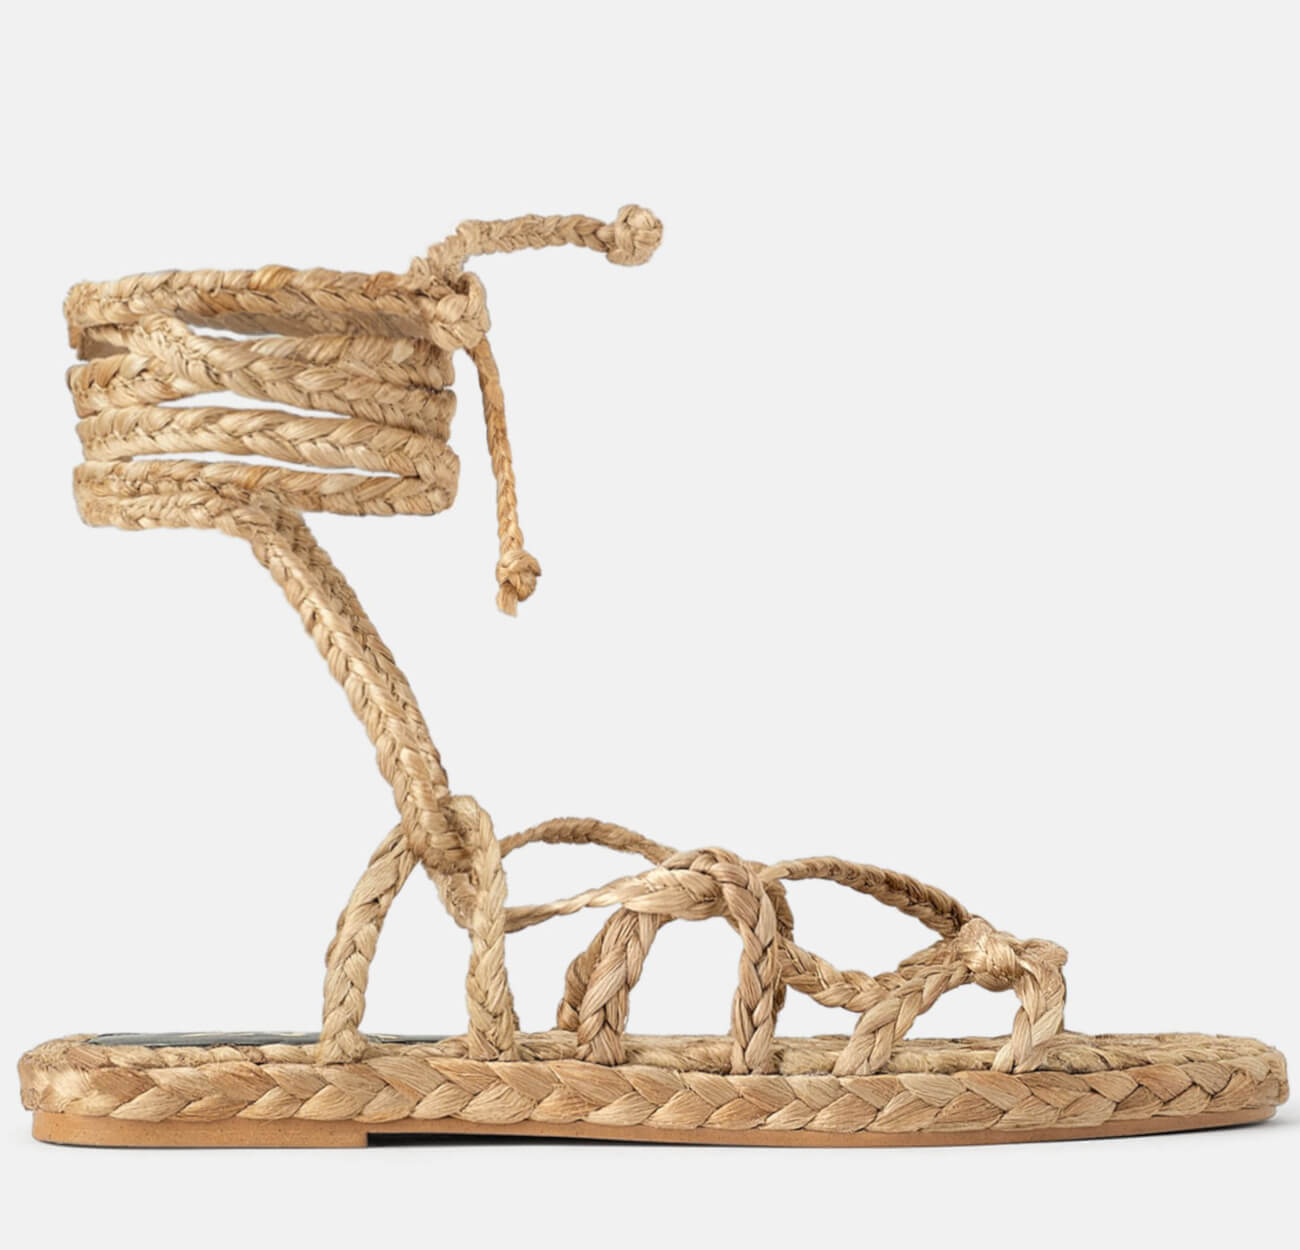 NATURAL WOVEN STRAP SANDALS for this summer